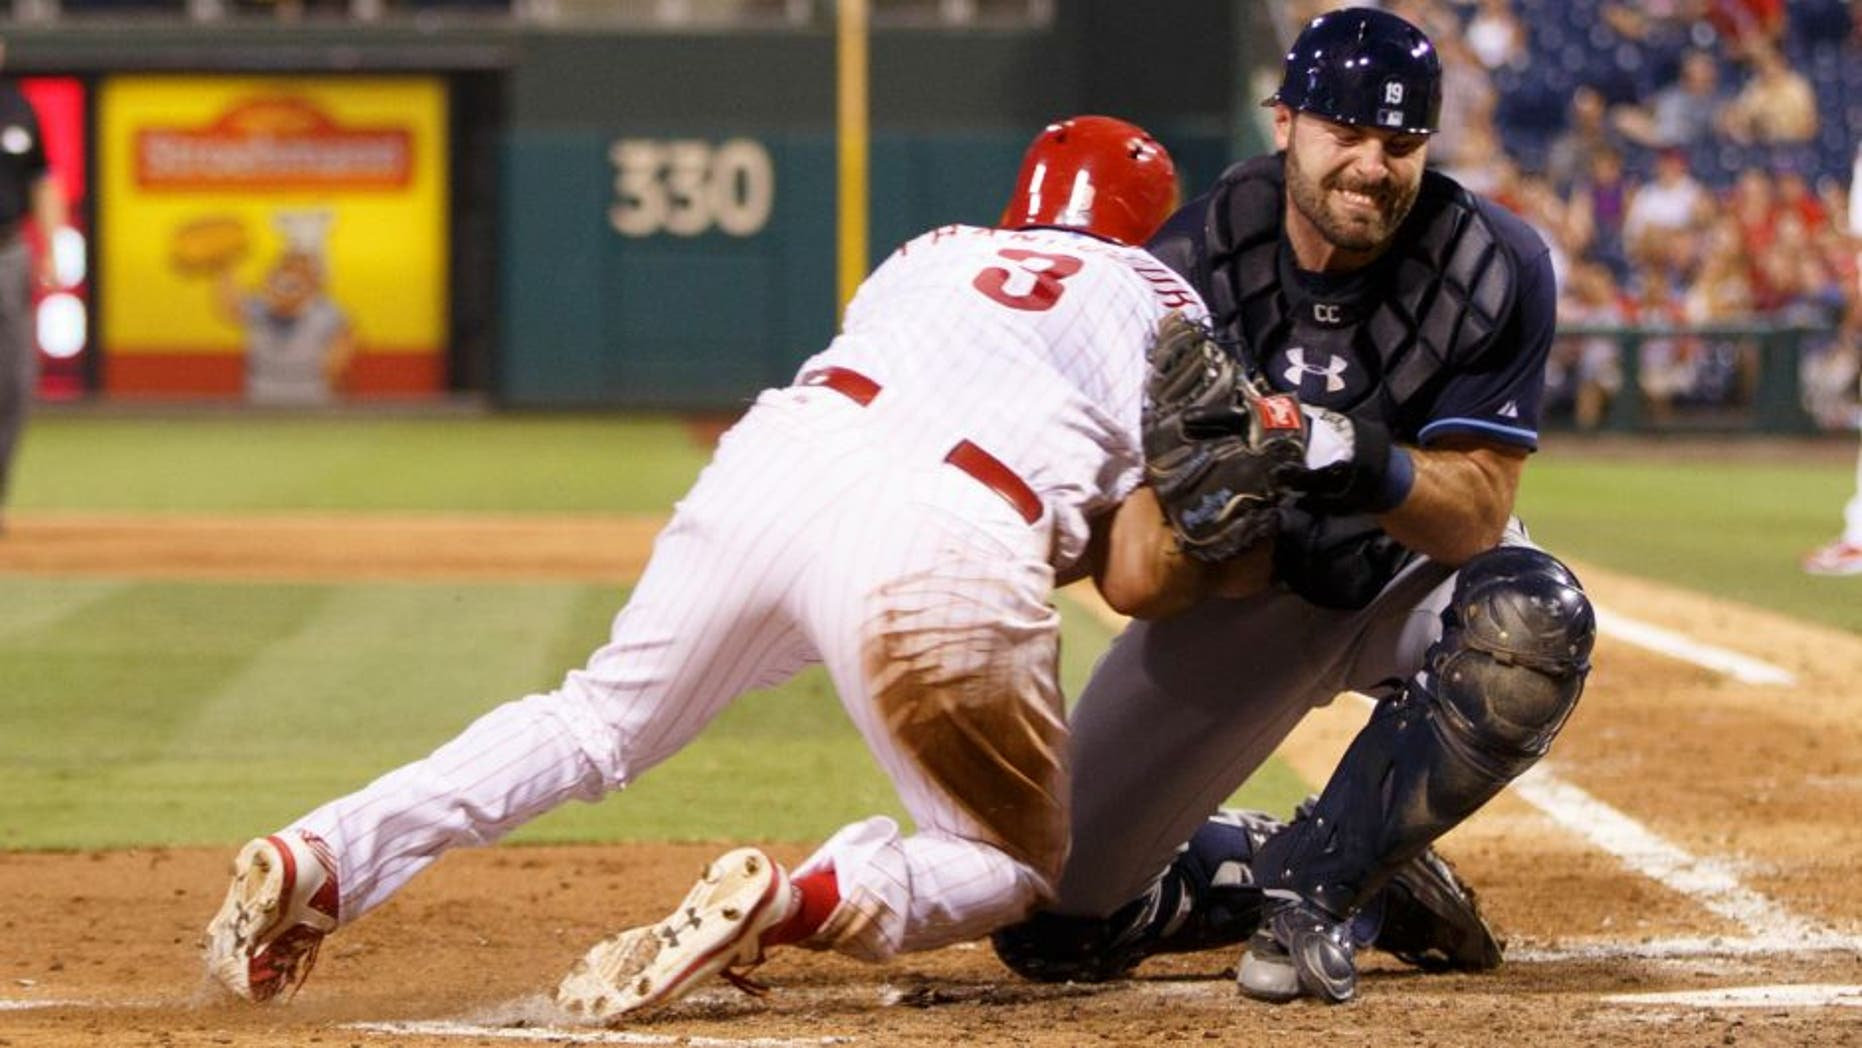 Tampa Bay Rays catcher Curt Casali, right, takes the hit from Philadelphia Phillies' Jeff Francoeur, left, as Francoeur is out at home during the fifth inning of a baseball game, Monday, July 20, 2015, in Philadelphia. (AP Photo/Chris Szagola)